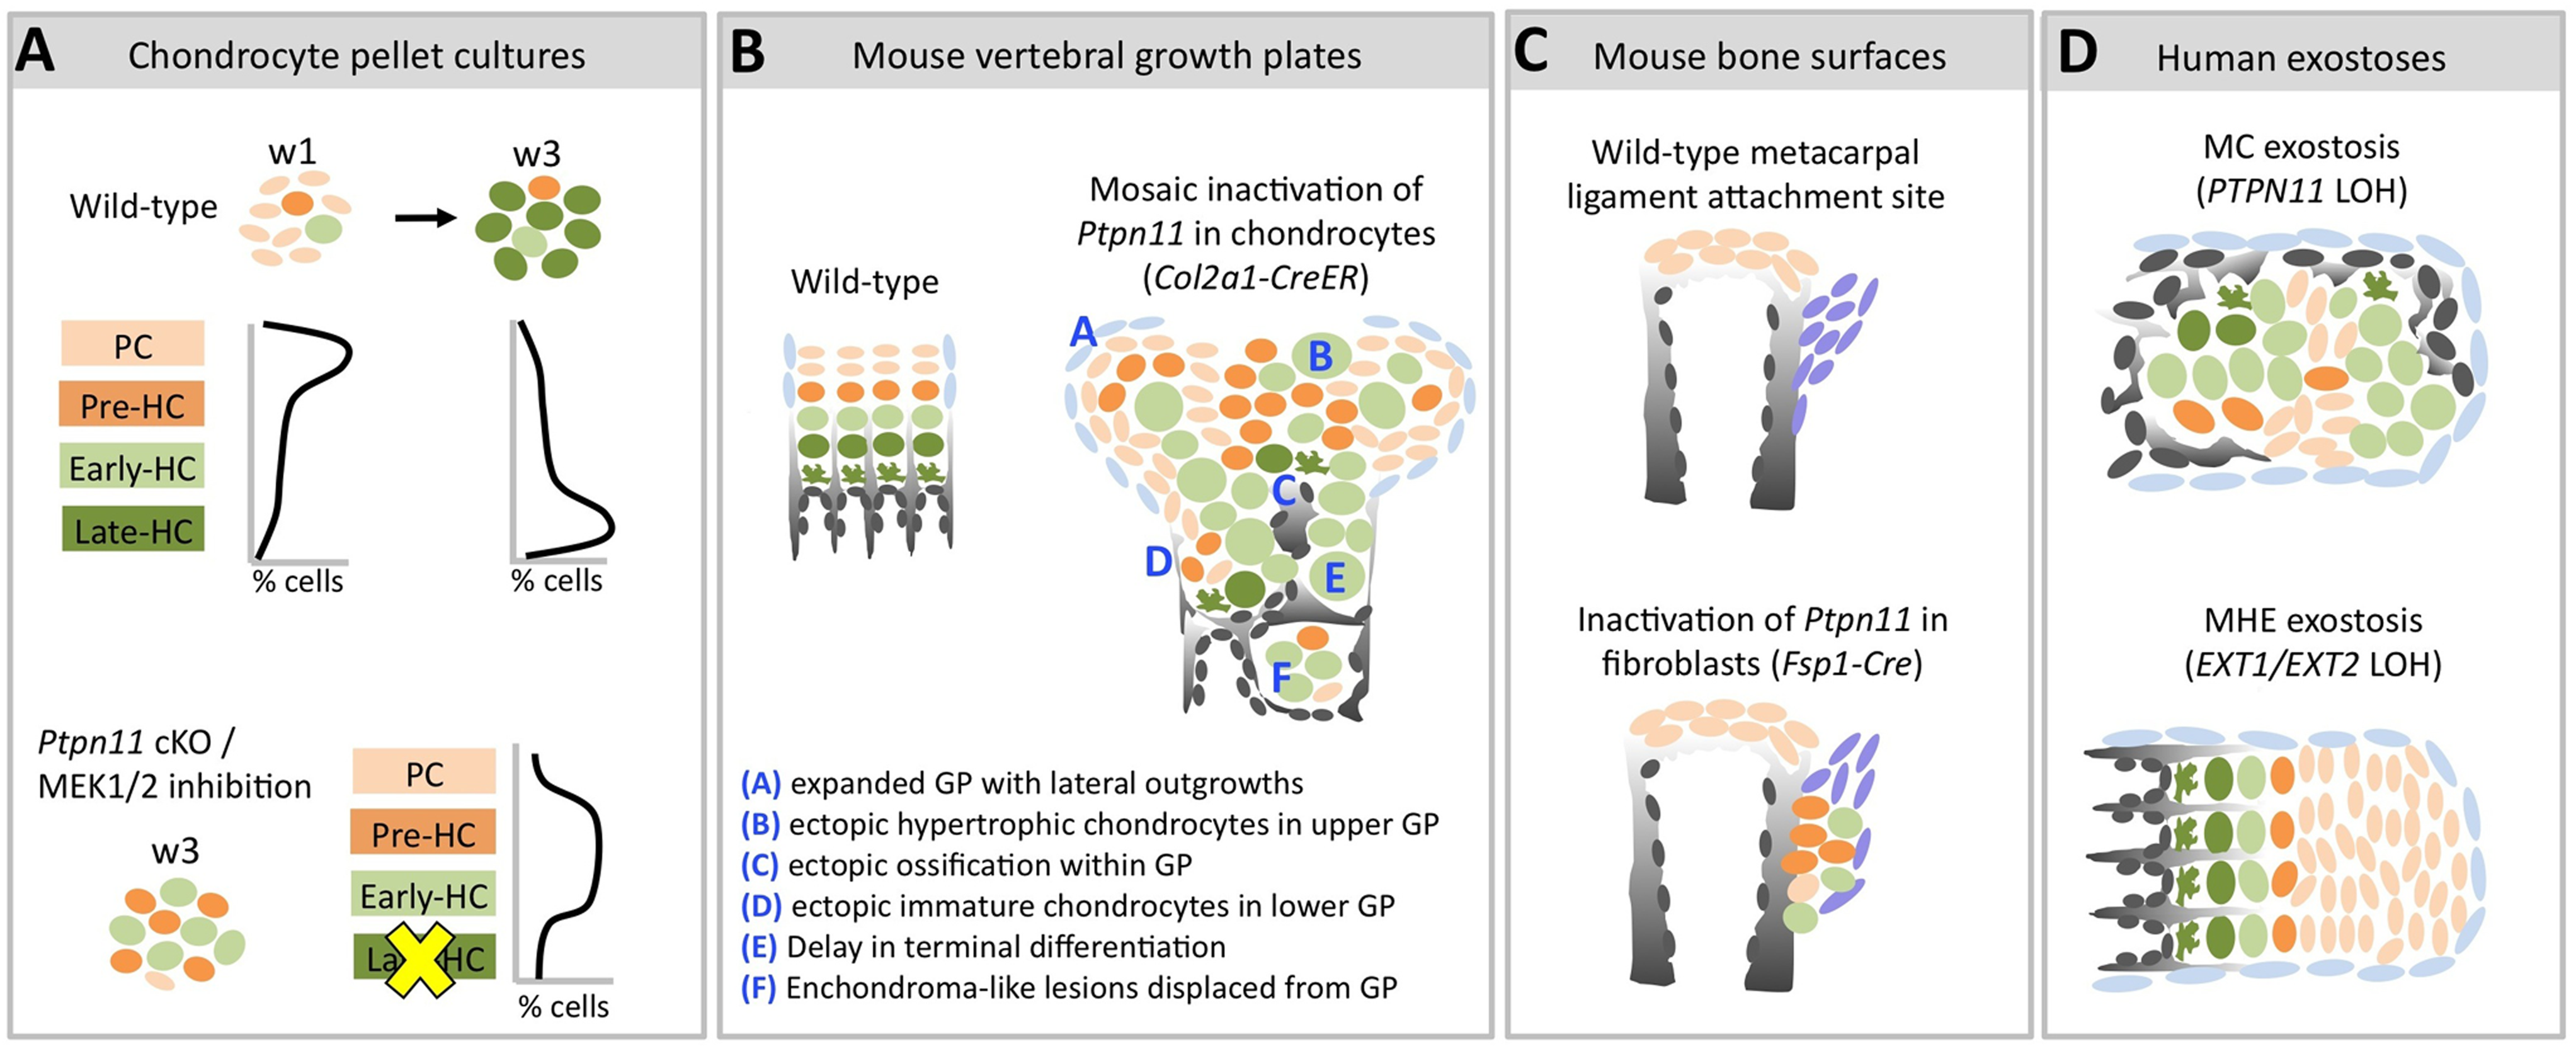 Model of the consequences of SHP2 depletion in pellet cultures, mouse vertebral growth plates, periarticular fibroblasts and human MC exostoses.